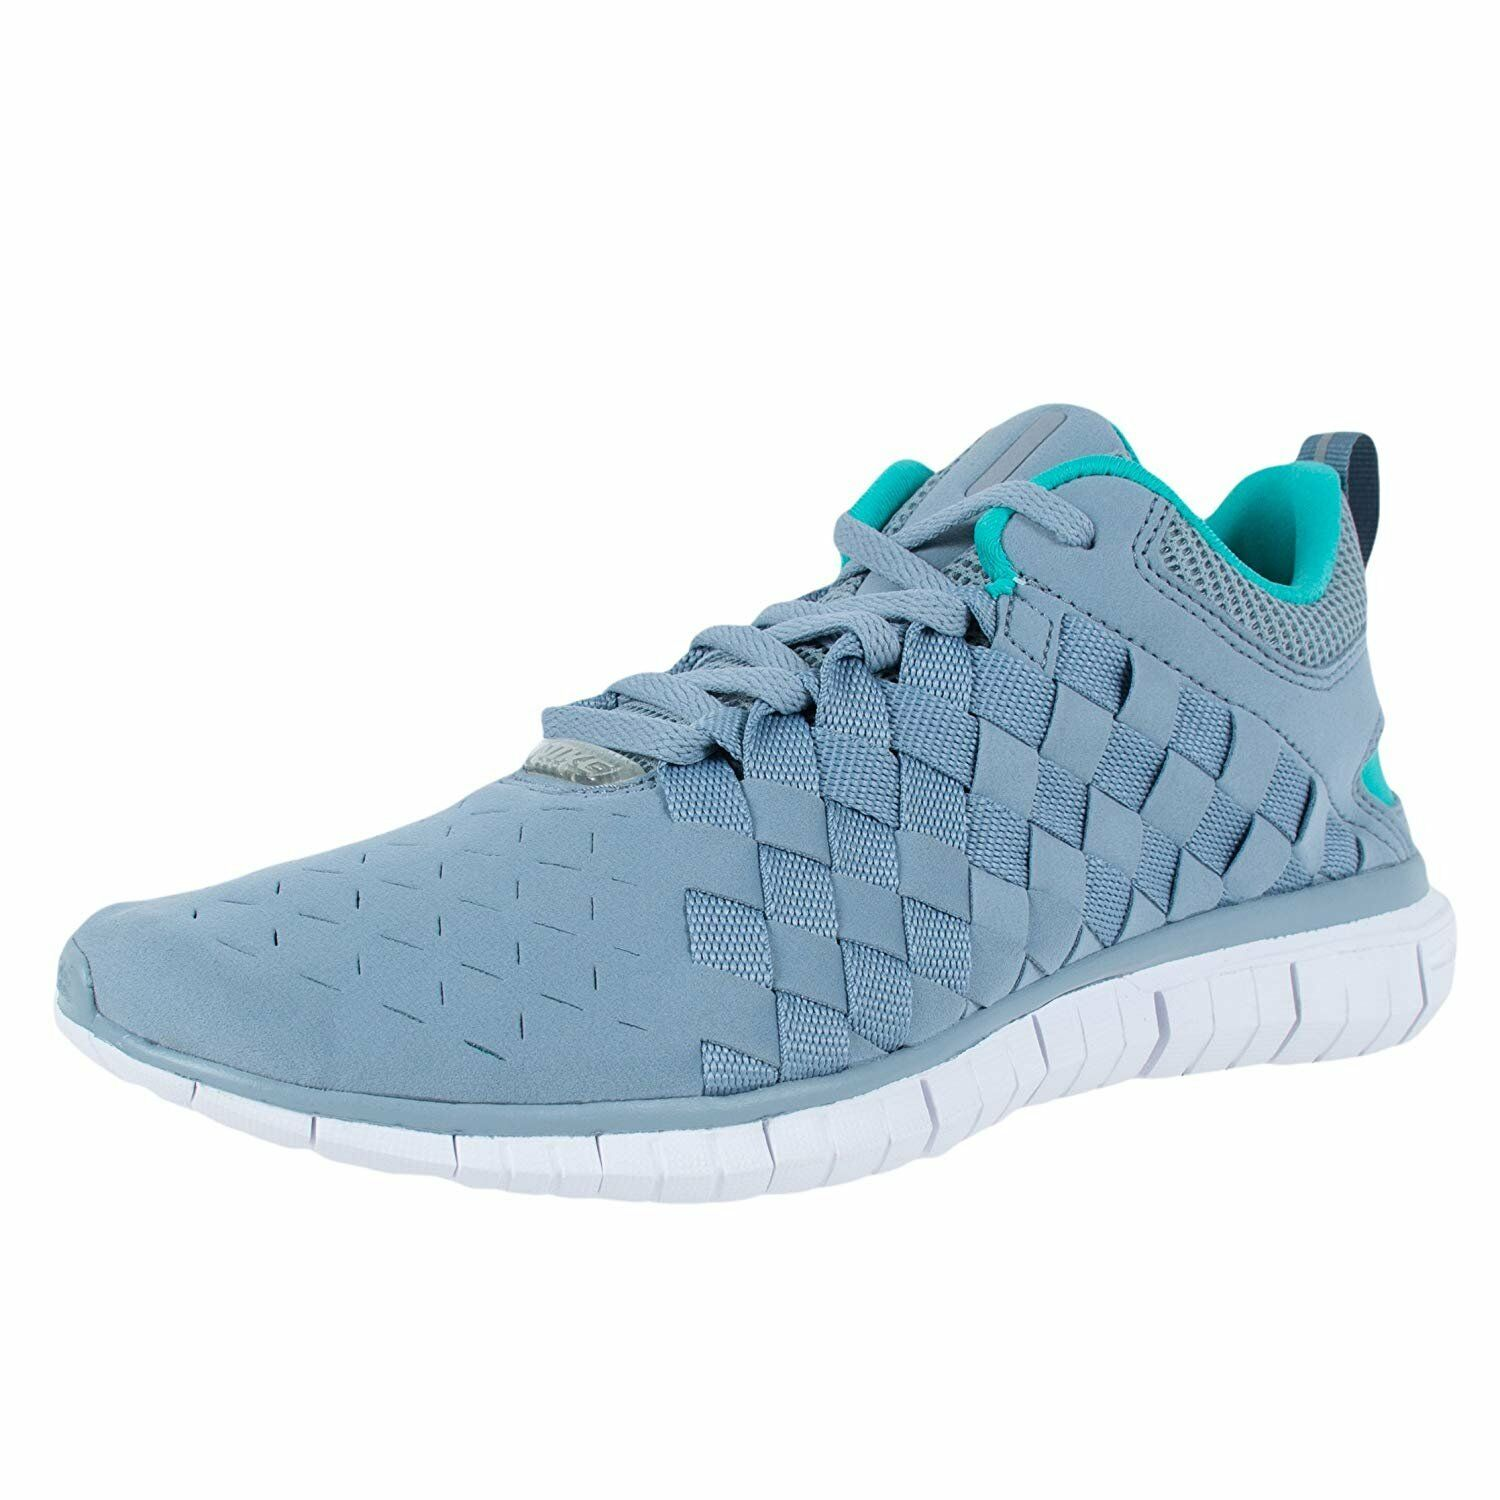 NIKE Free OG '14 Woven Running shoes Dove Grey blueee Graphite 725070 004